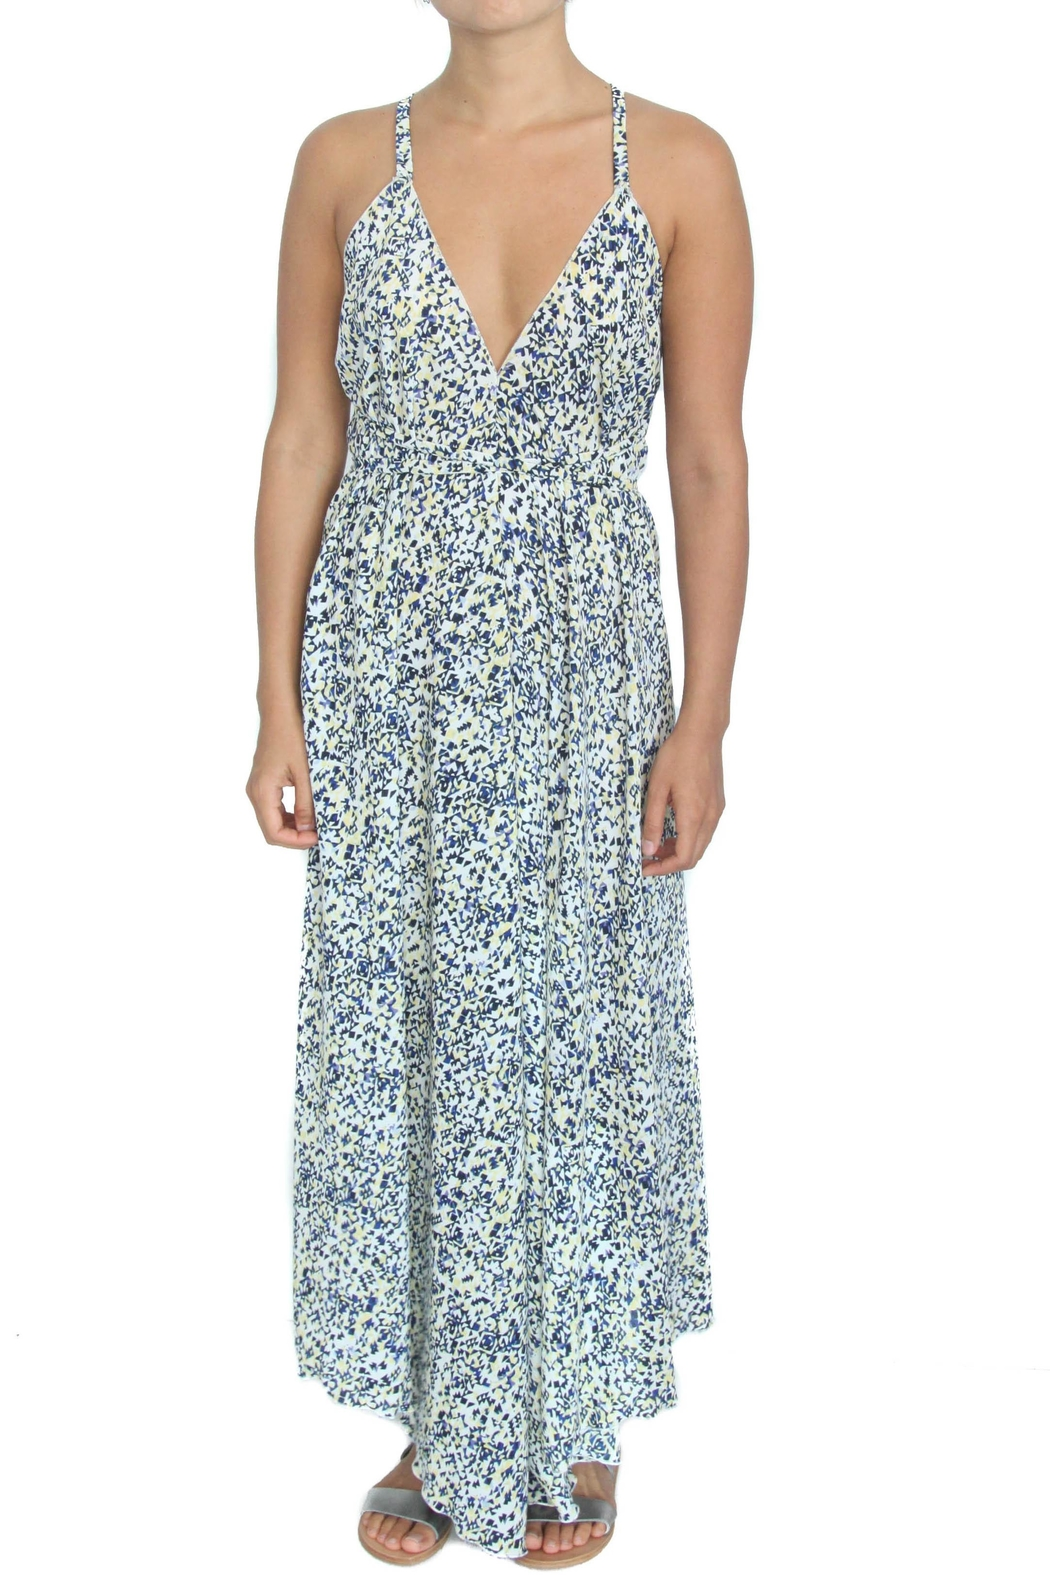 LOVEleigh Lemon Noosa Dress - Main Image